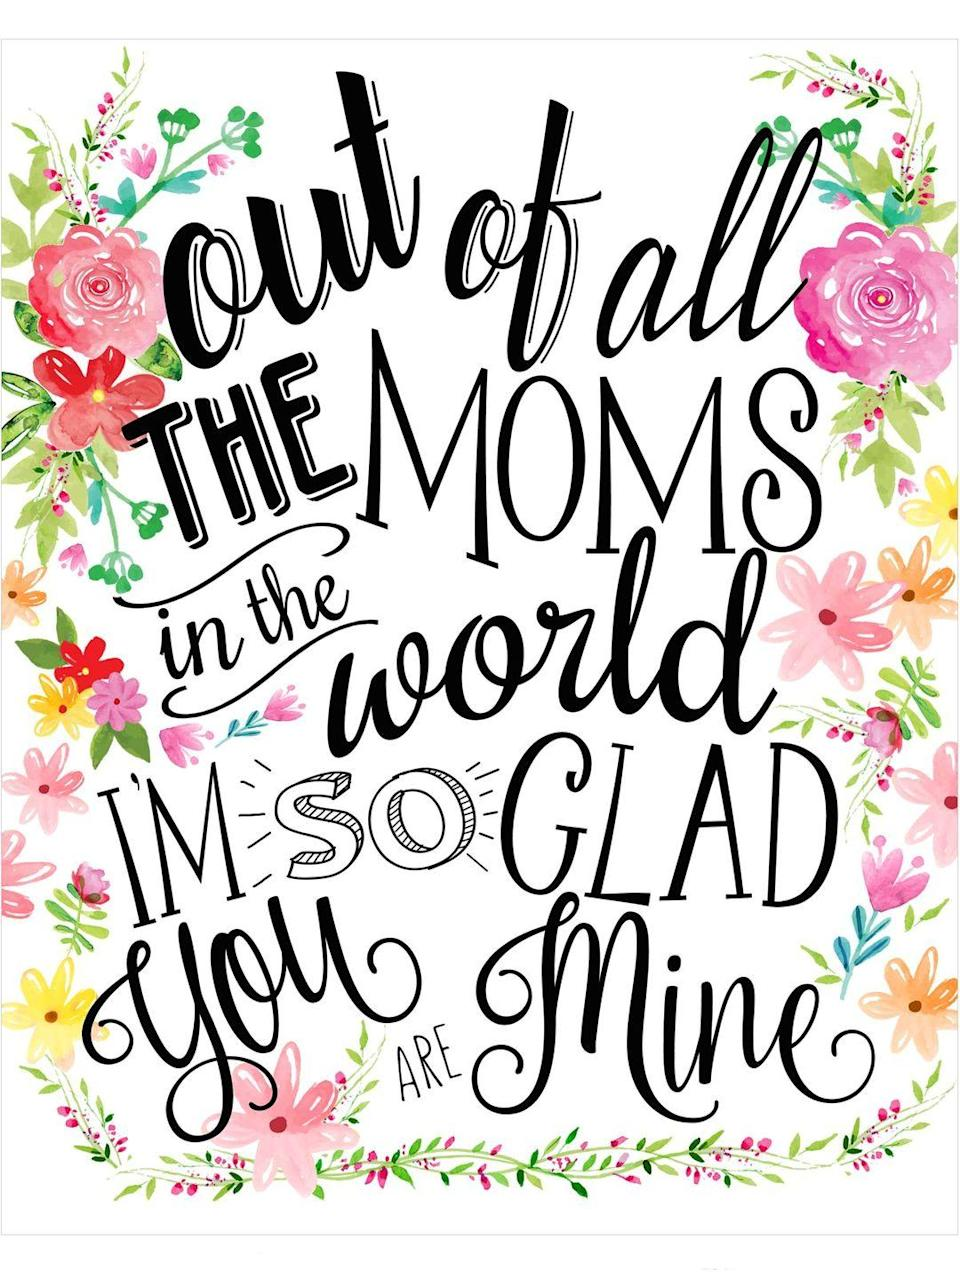 "<p>This script and floral card is so striking that Mom may want to frame it and display it as wall art after the holiday. It perfectly highlights how you feel about her.</p><p><em><strong>Get the printable at <a href=""http://www.freeprettythingsforyou.com/2016/04/creative-mothers-day-gifts/?utm_source=feedburner&utm_medium=email&utm_campaign=Feed:+freeprettythingsforyou/ifrZ+(*Free%E2%99%A5+Pretty+%E2%99%A5Things+%E2%99%A5For+%E2%99%A5You*+2)"" rel=""nofollow noopener"" target=""_blank"" data-ylk=""slk:Free Pretty Things For You"" class=""link rapid-noclick-resp"">Free Pretty Things For You</a>.</strong></em></p>"